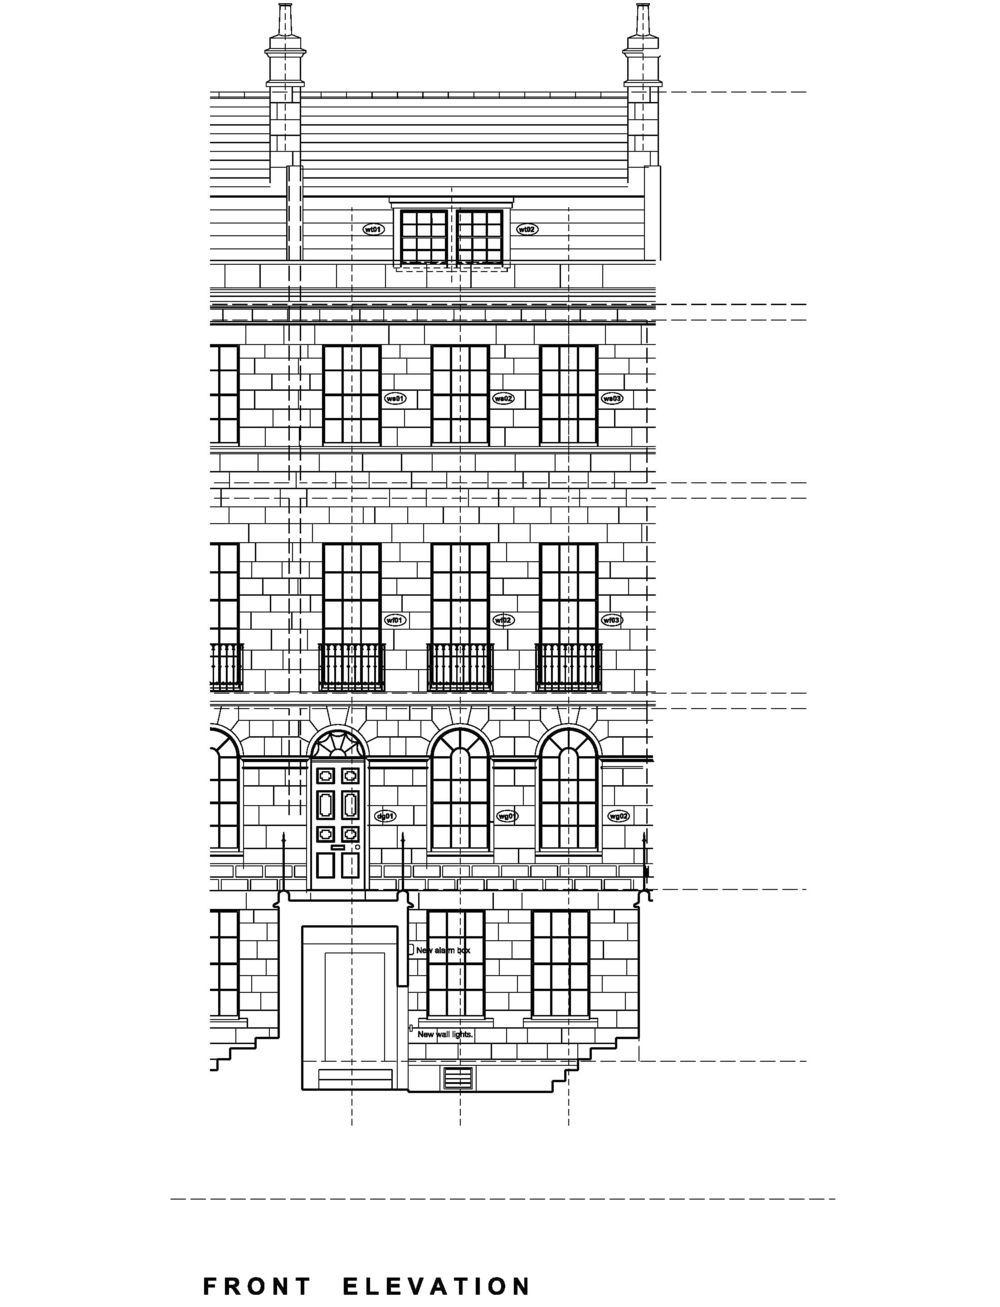 Johnsone Street front elevation cropped.png